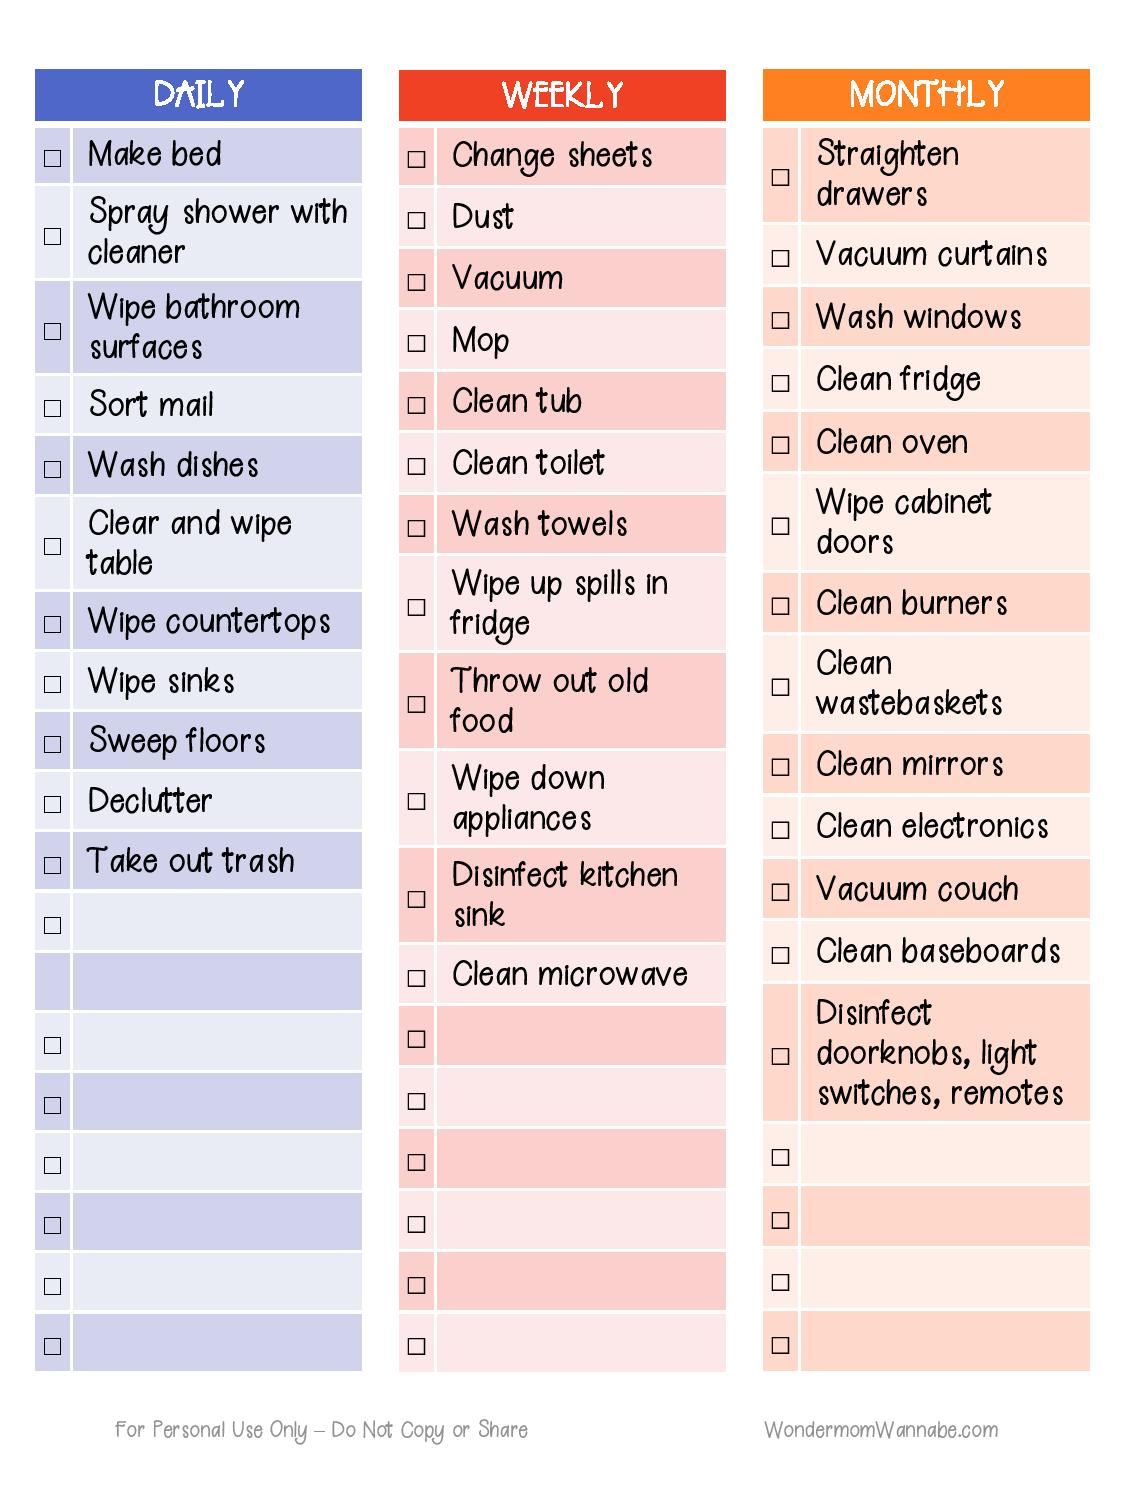 photo regarding Printable Cleaning Schedule titled Printable Cleansing Timetable